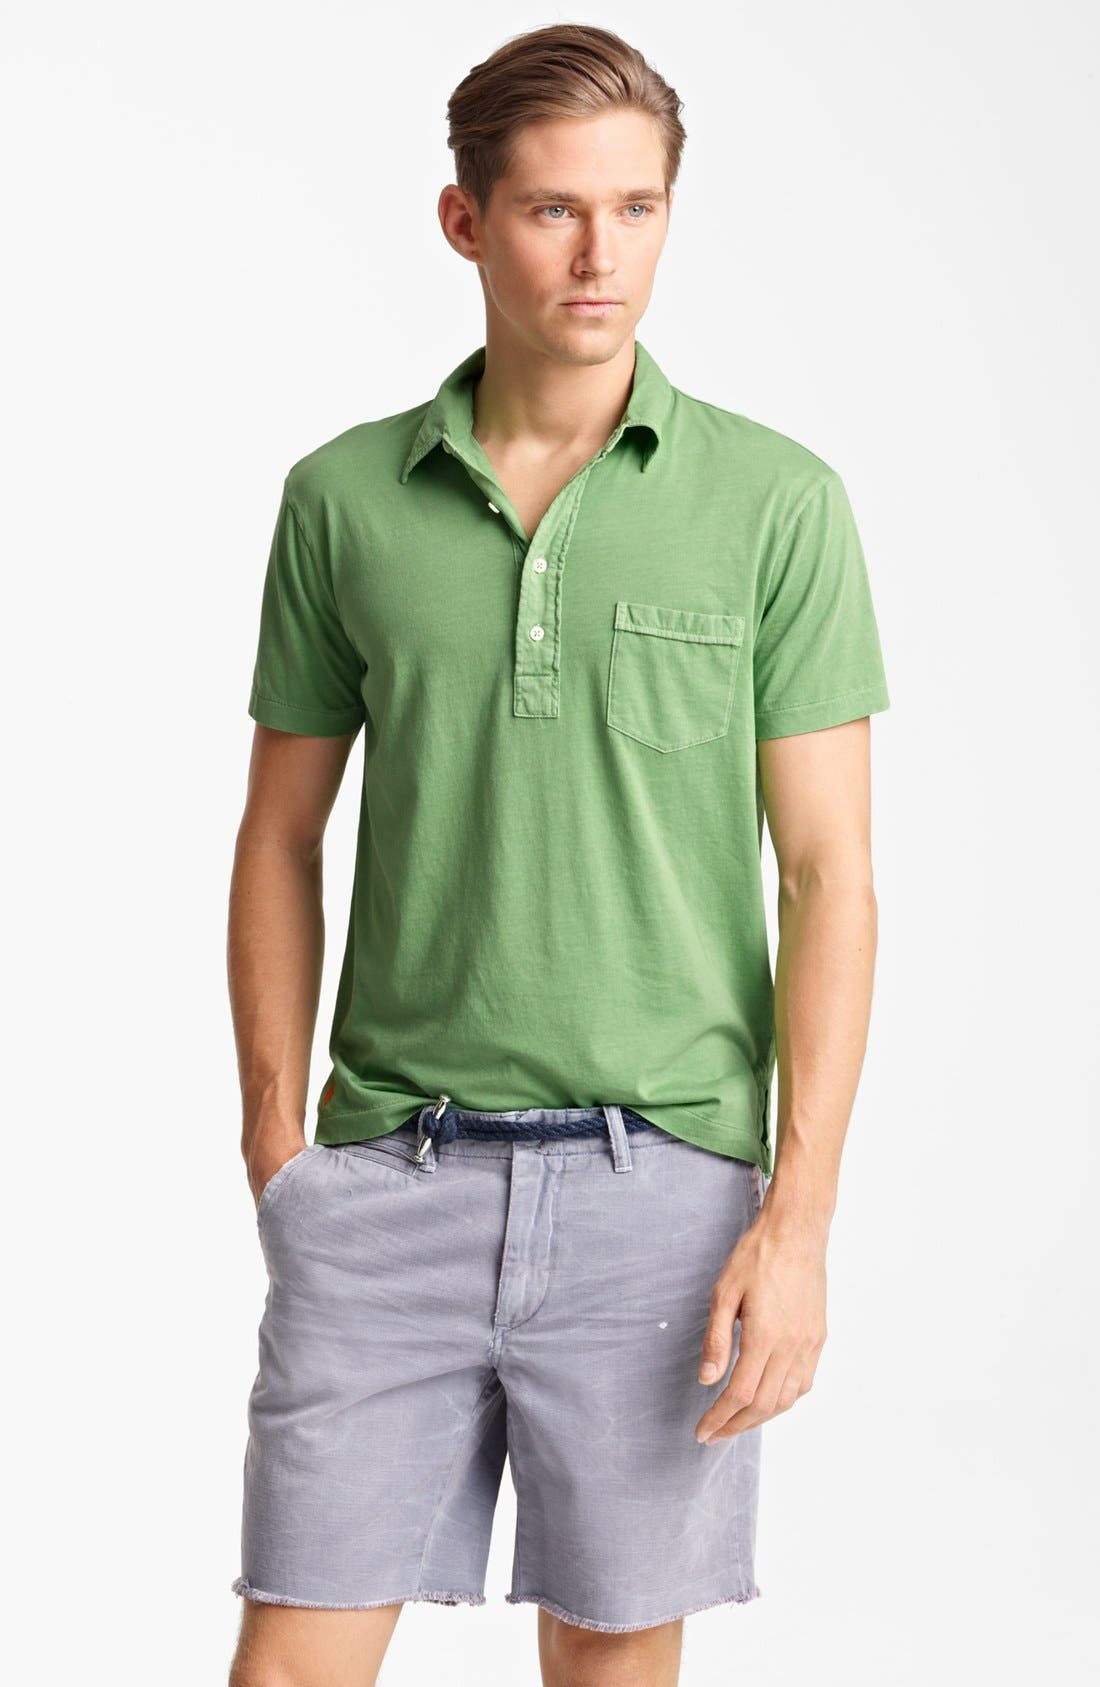 Alternate Image 1 Selected - Polo Ralph Lauren Classic Fit Jersey Polo